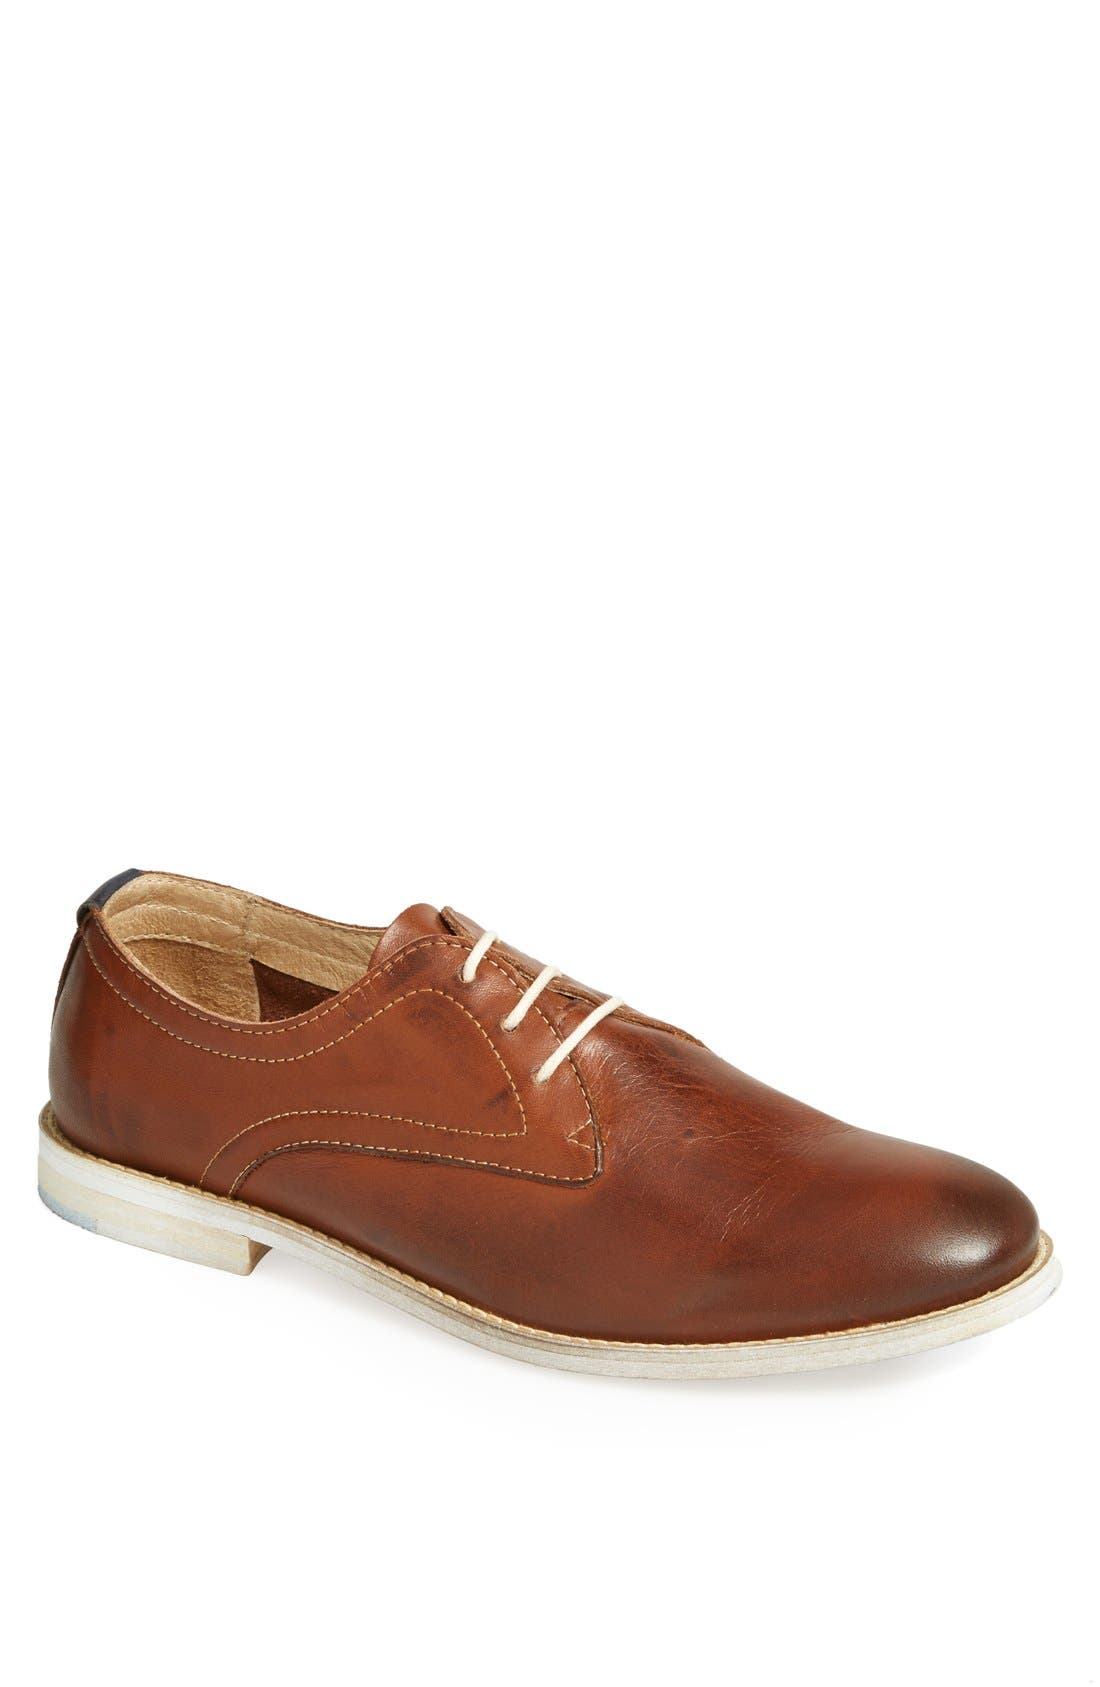 Alternate Image 1 Selected - ALDO 'Bovell' Plain Toe Derby (Men)